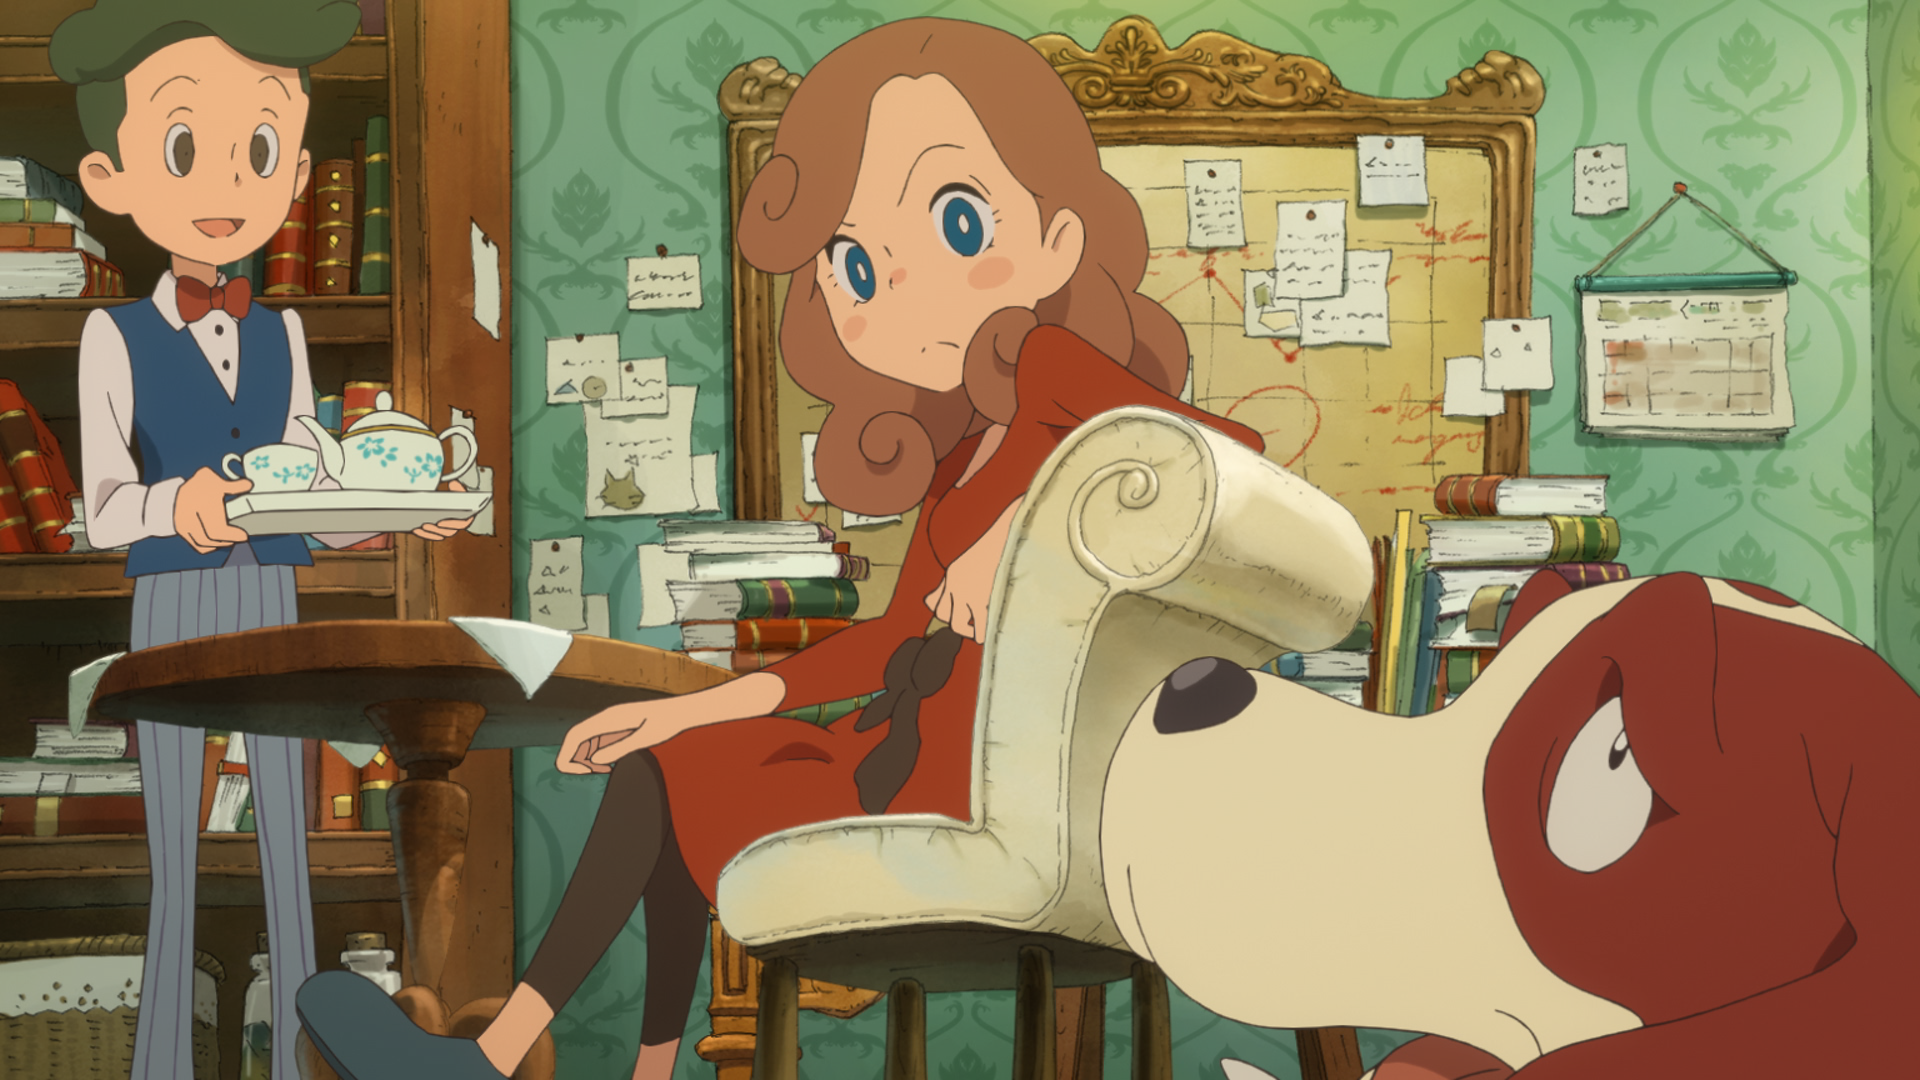 5 Hours With The New Layton: Great Writing, Weak Puzzles